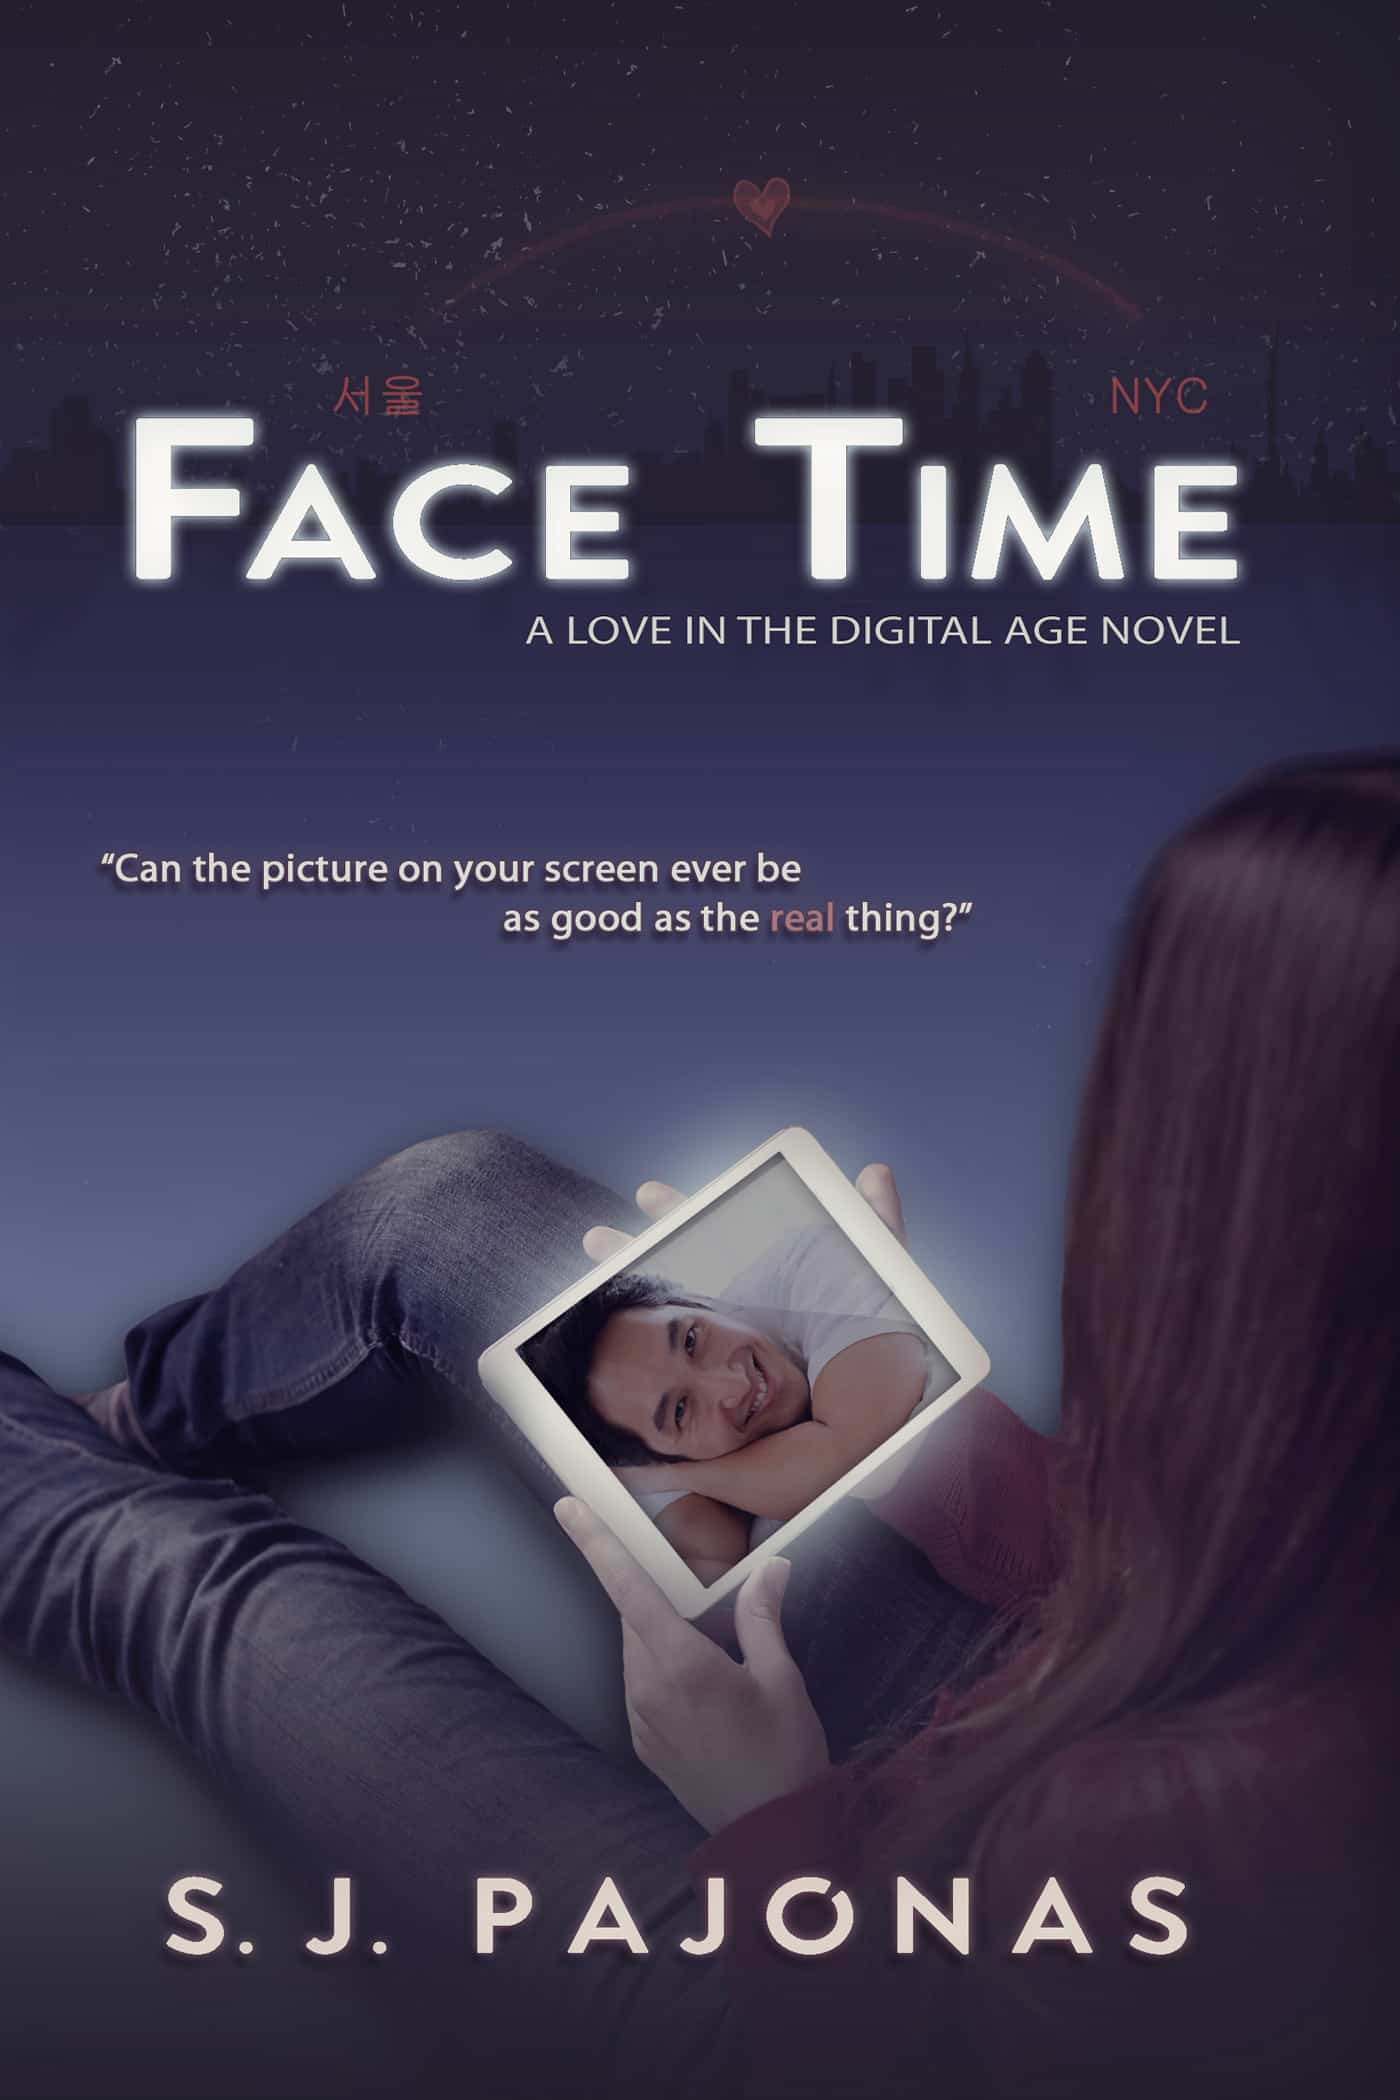 Revealing the cover for FACE TIME!